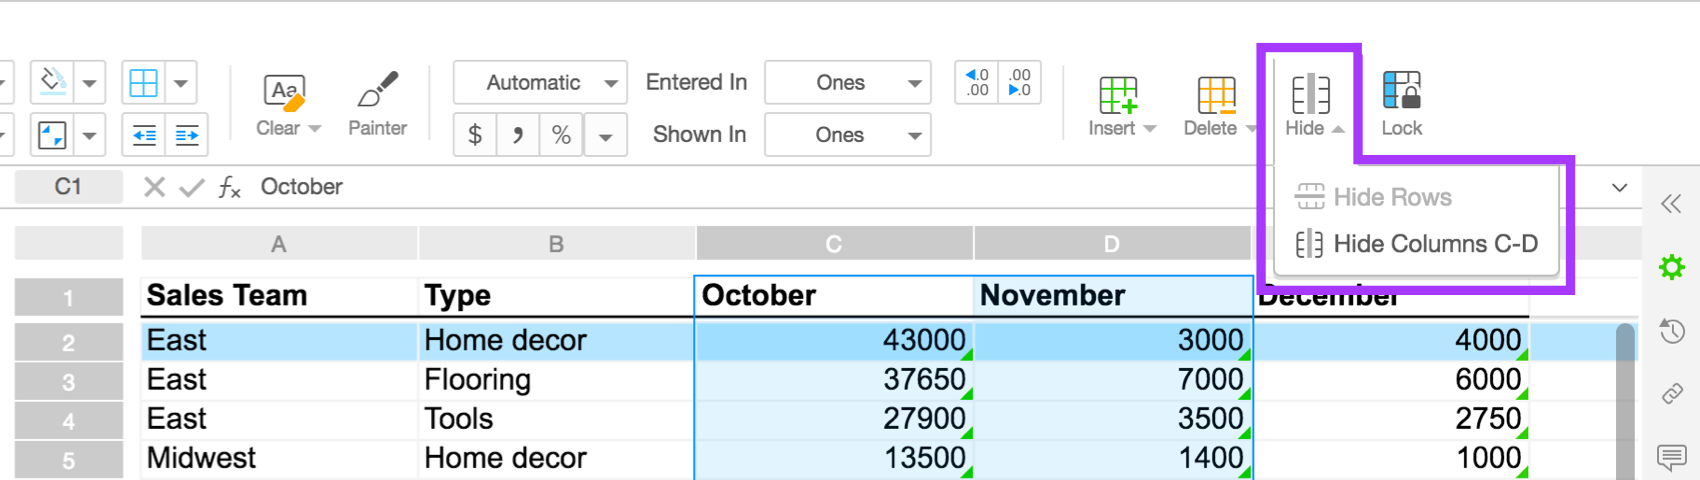 hide rows and columns in spreadsheets